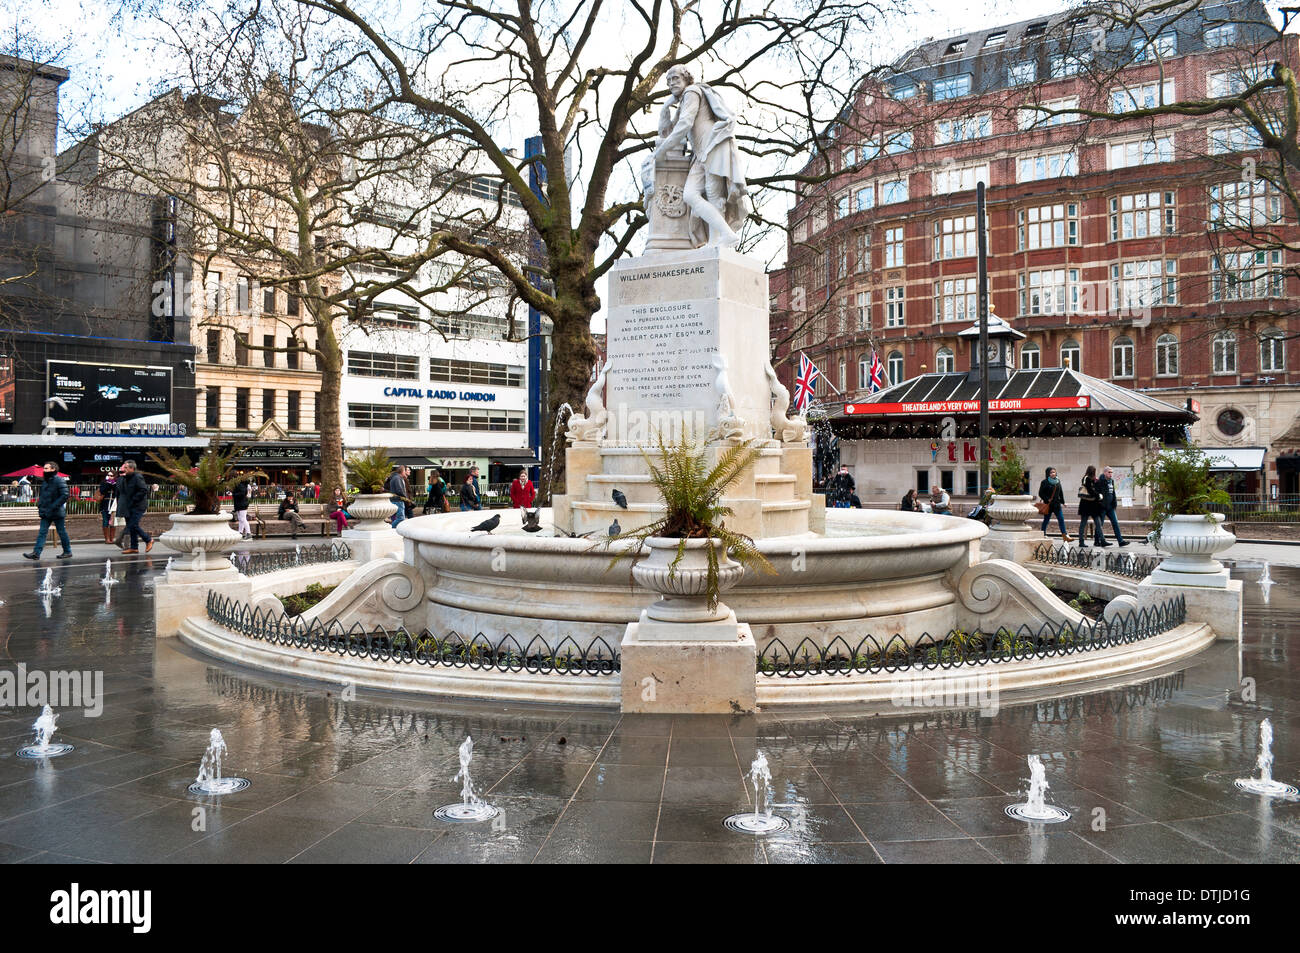 William Shakespeare statue, Leicester Square, London, Uk - Stock Image